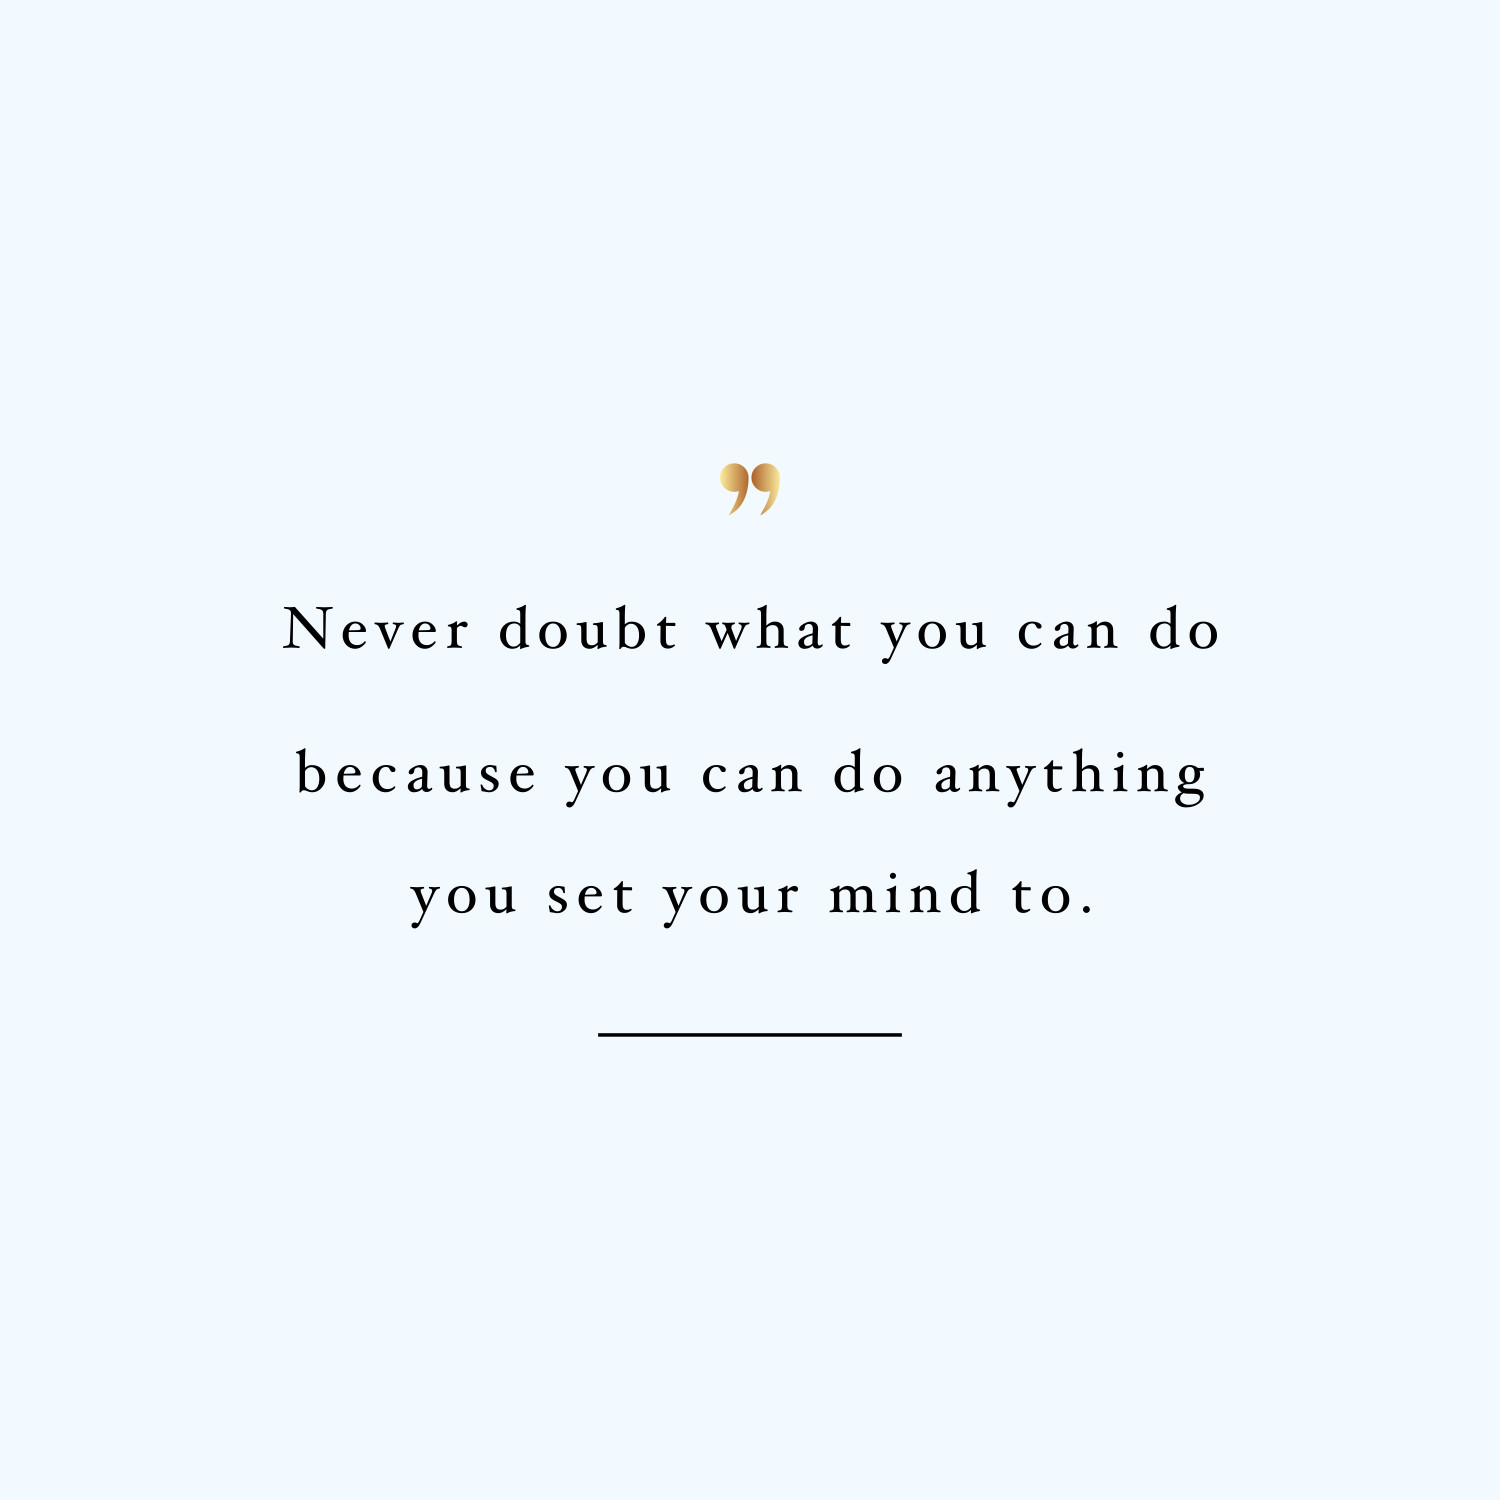 Never doubt what you can do! Browse our collection of inspirational wellness and fitness quotes and get instant training and weight loss motivation. Stay focused and get fit, healthy and happy! https://www.spotebi.com/workout-motivation/never-doubt-what-you-can-do/